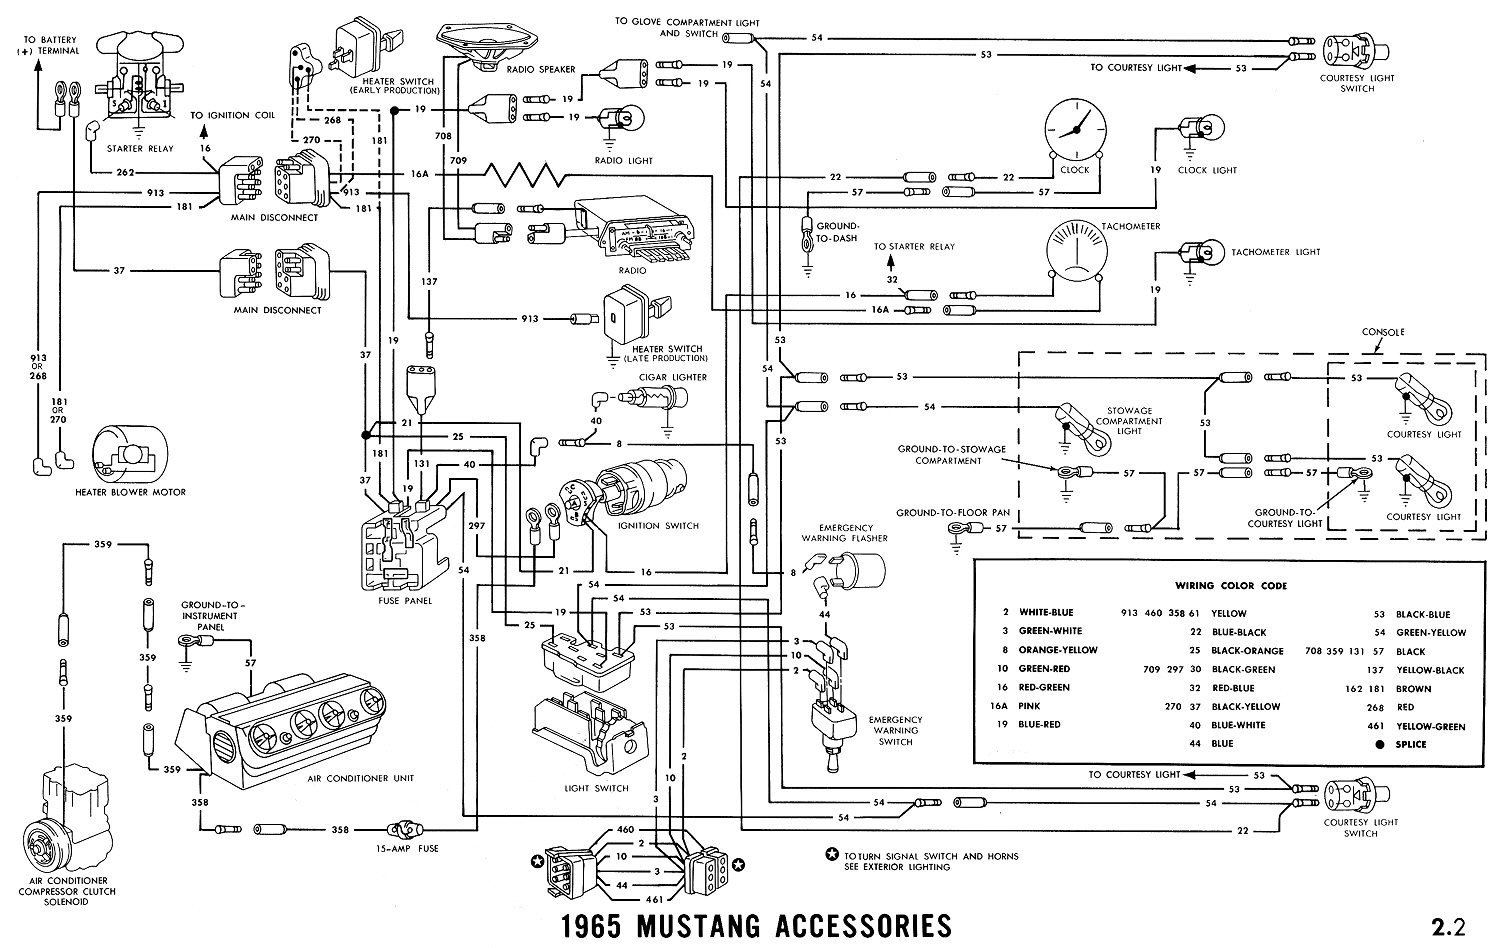 1969 mustang headlight wiring diagrams wiring diagram 1969 Mustang Ignition Wiring 1969 mustang headlight wiring diagrams